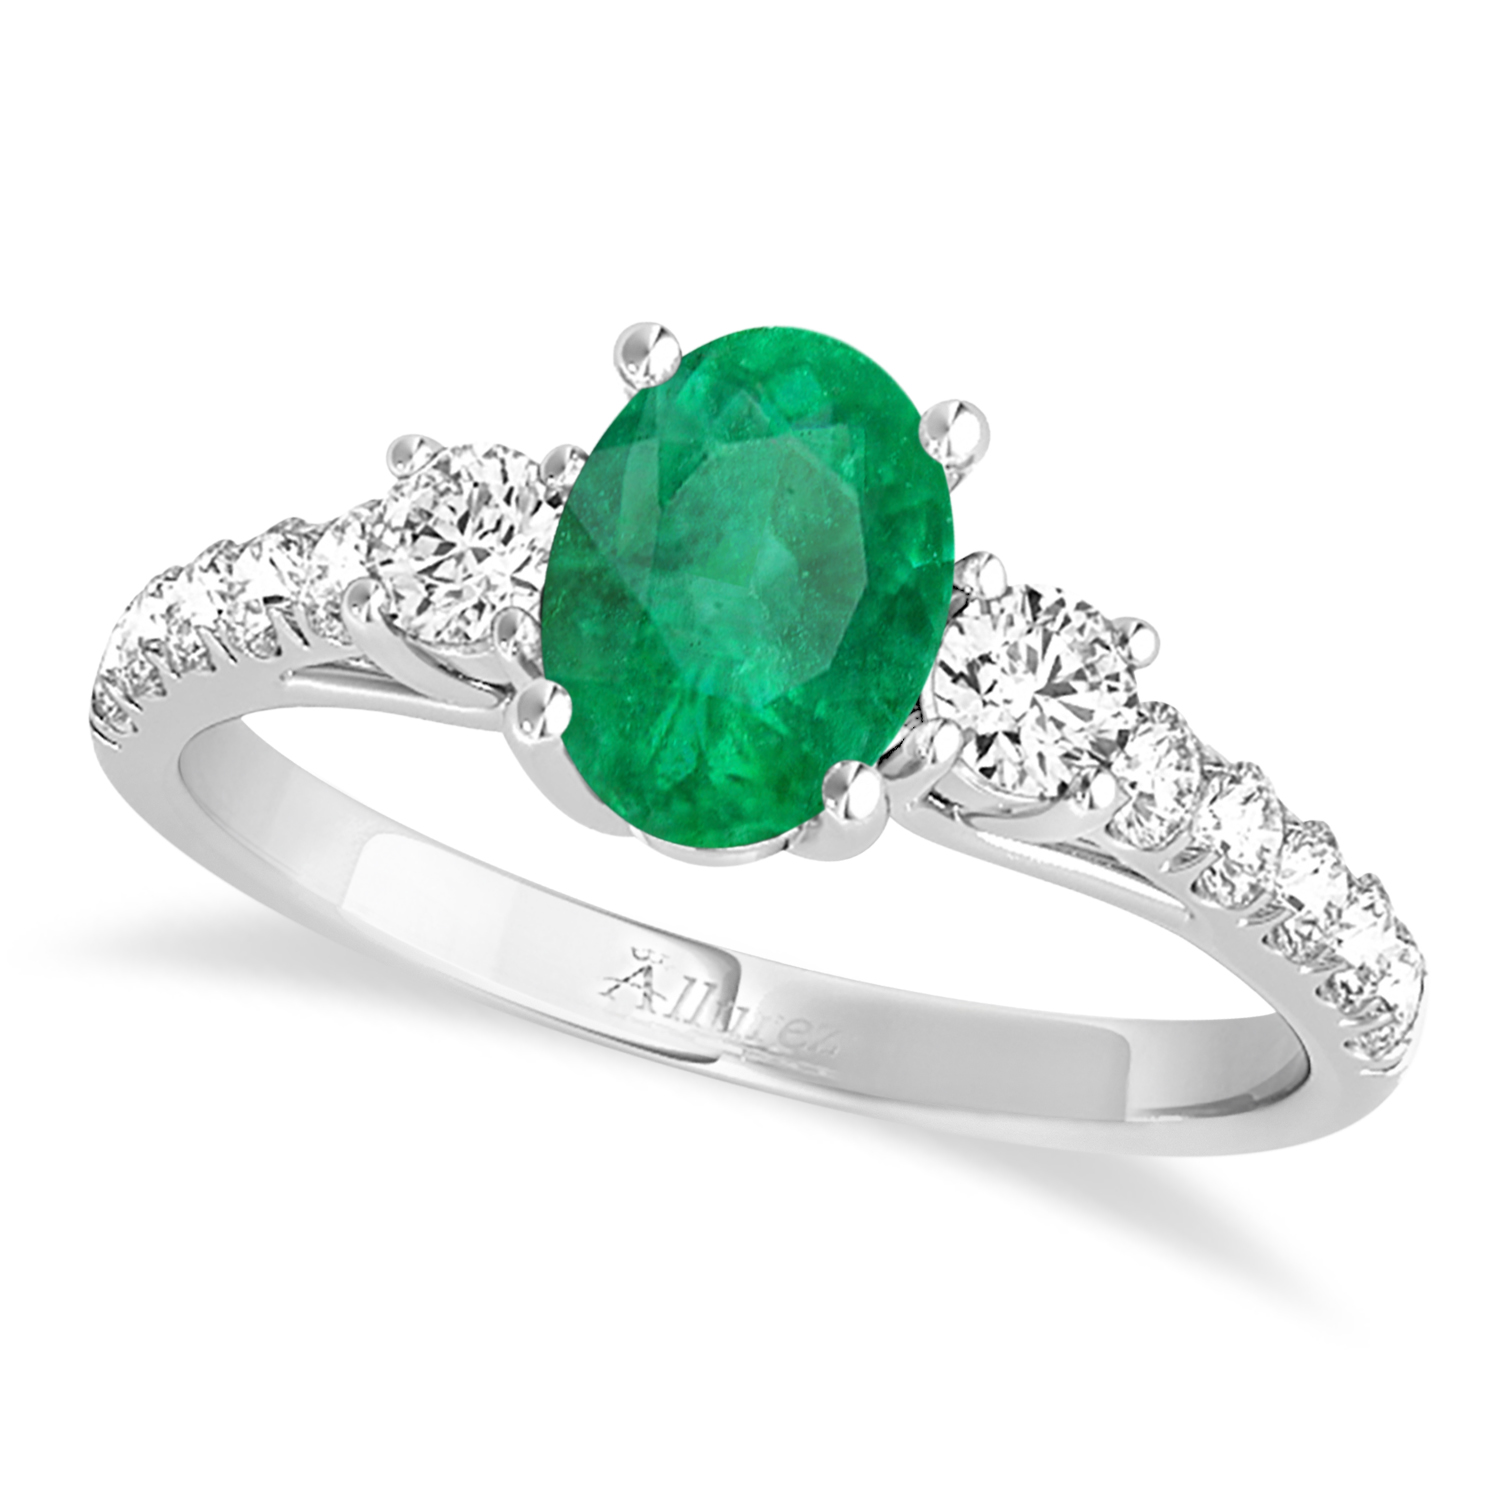 Oval Cut Emerald & Diamond Engagement Ring 14k White Gold (1.40ct)